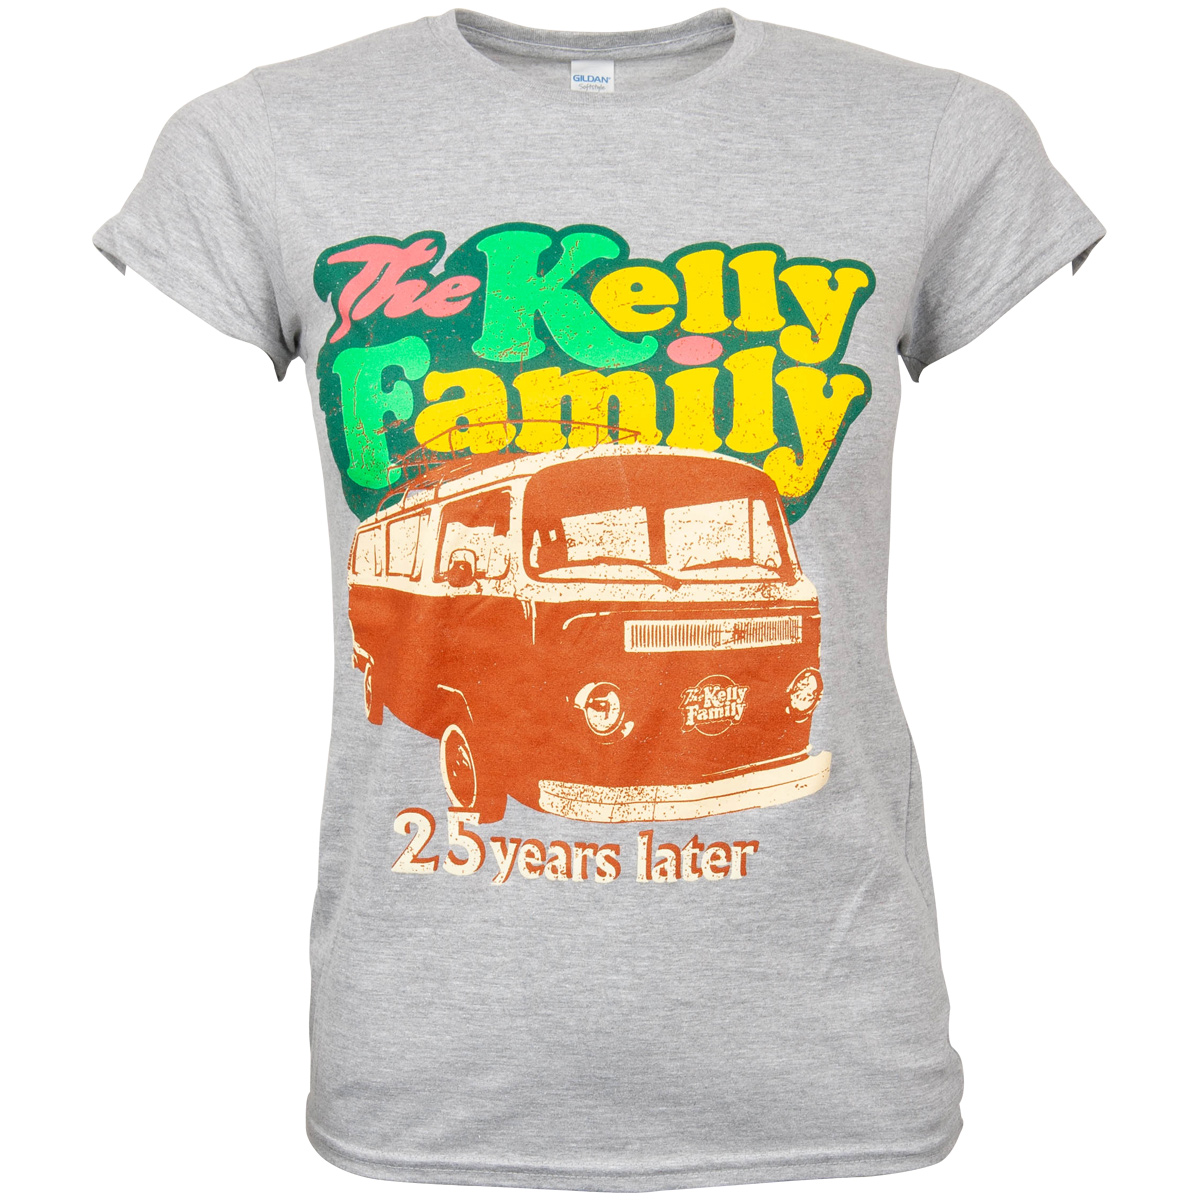 The Kelly Family - Damen Tour T-Shirt 2019-2020 Camper Van - grau